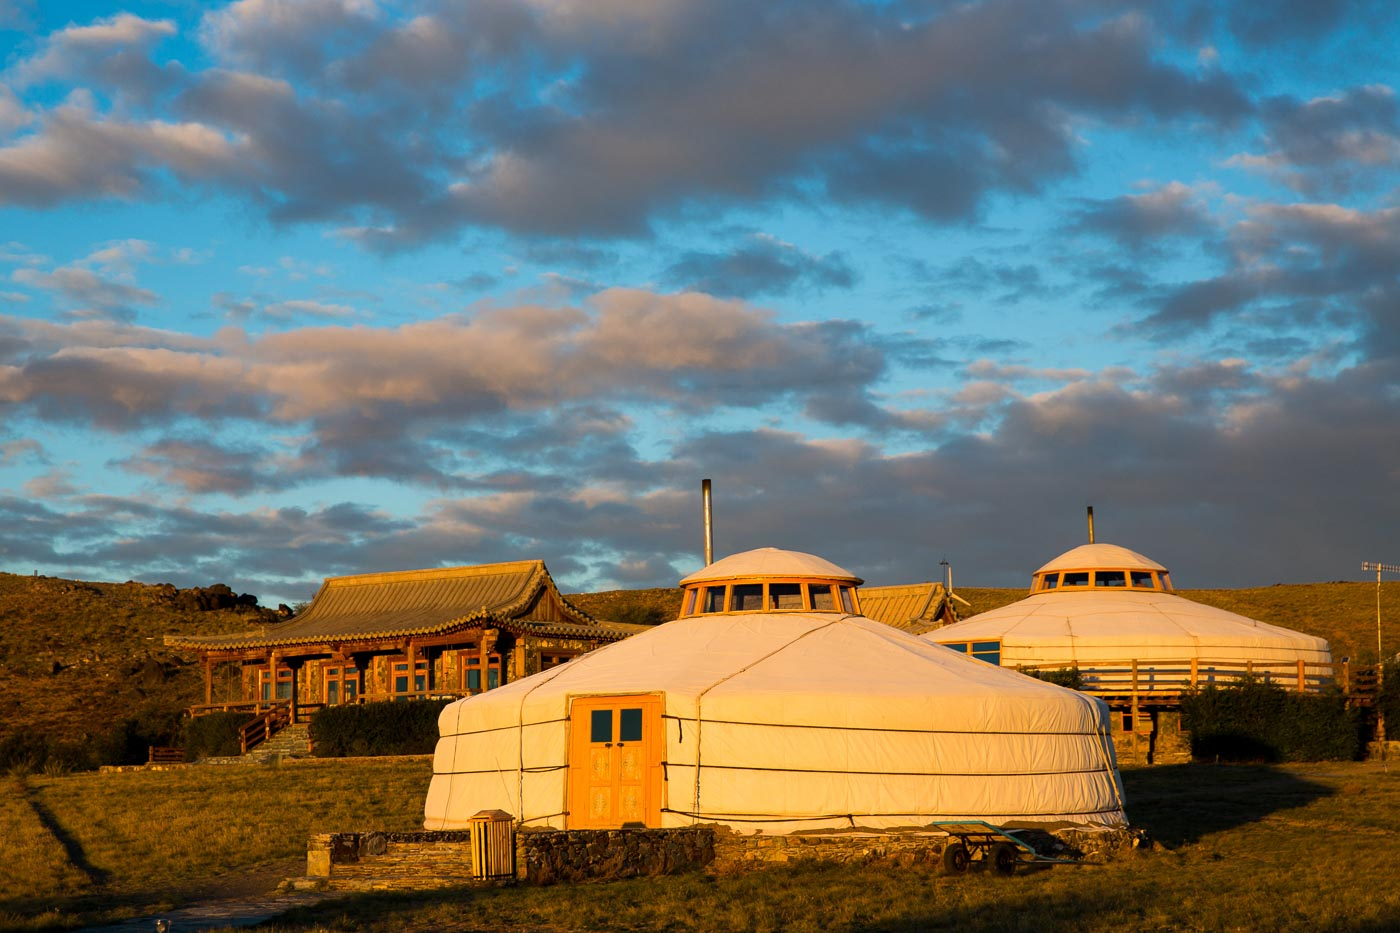 Three Camel Lodge in Mongolia image by Gan Ulzii